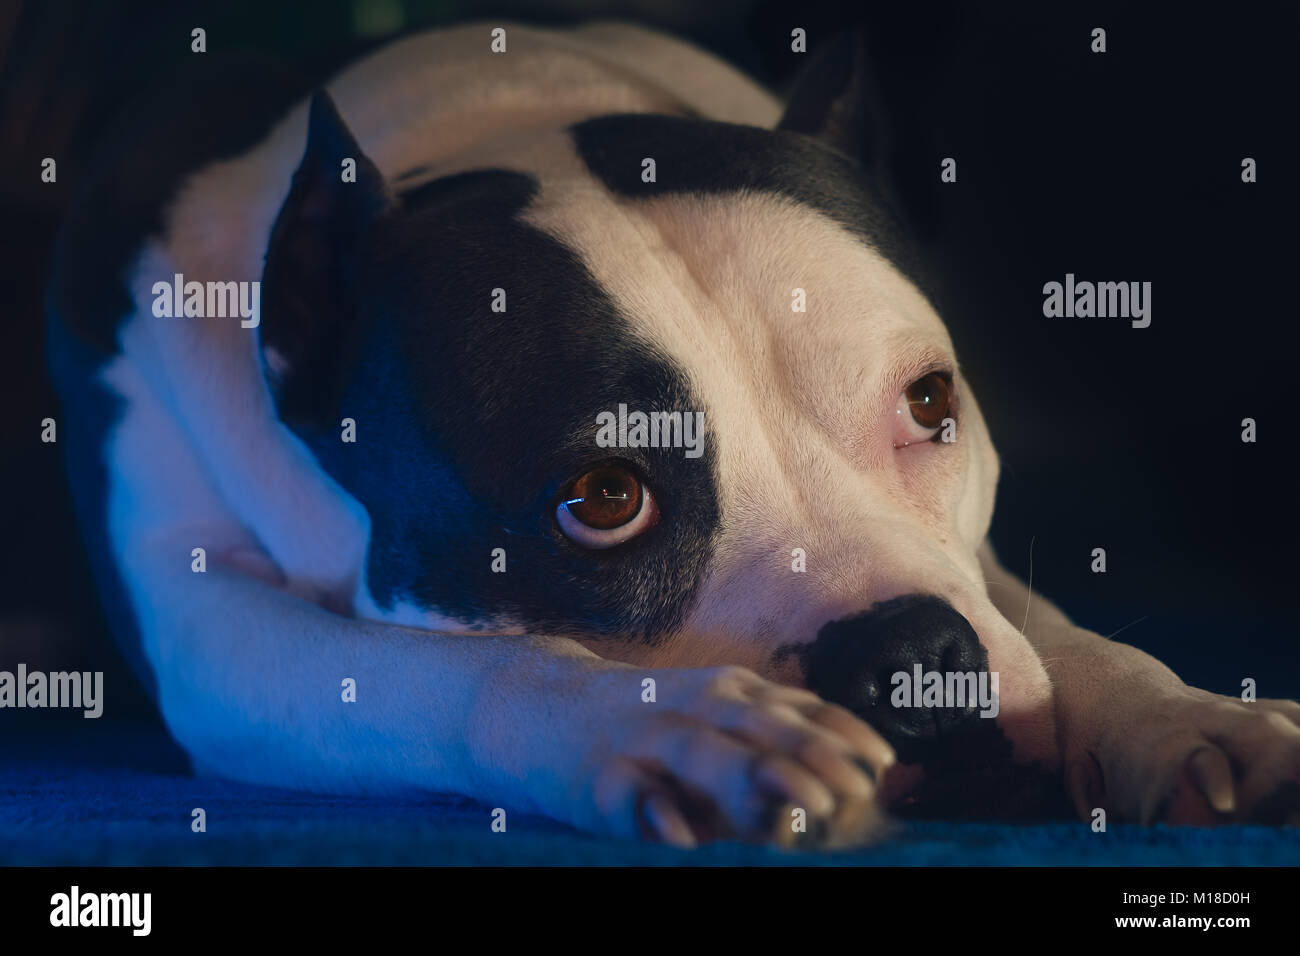 Staffordshire Terrier dog with sad eyes - Stock Image